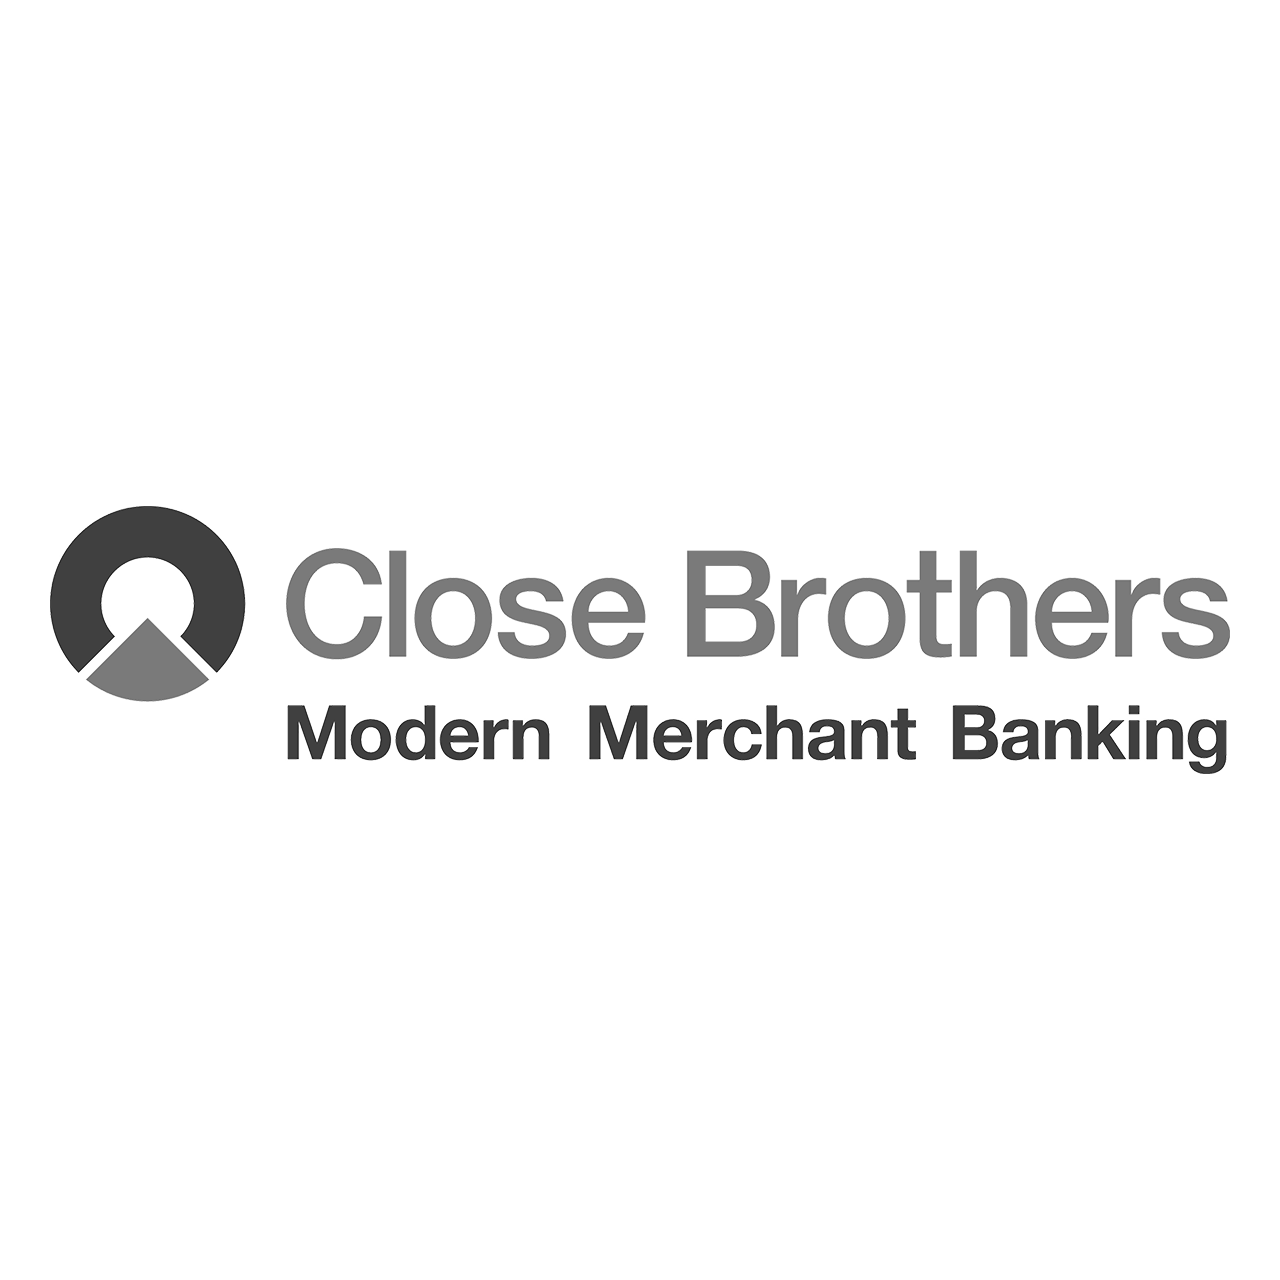 Logo Close Brothers, black & white